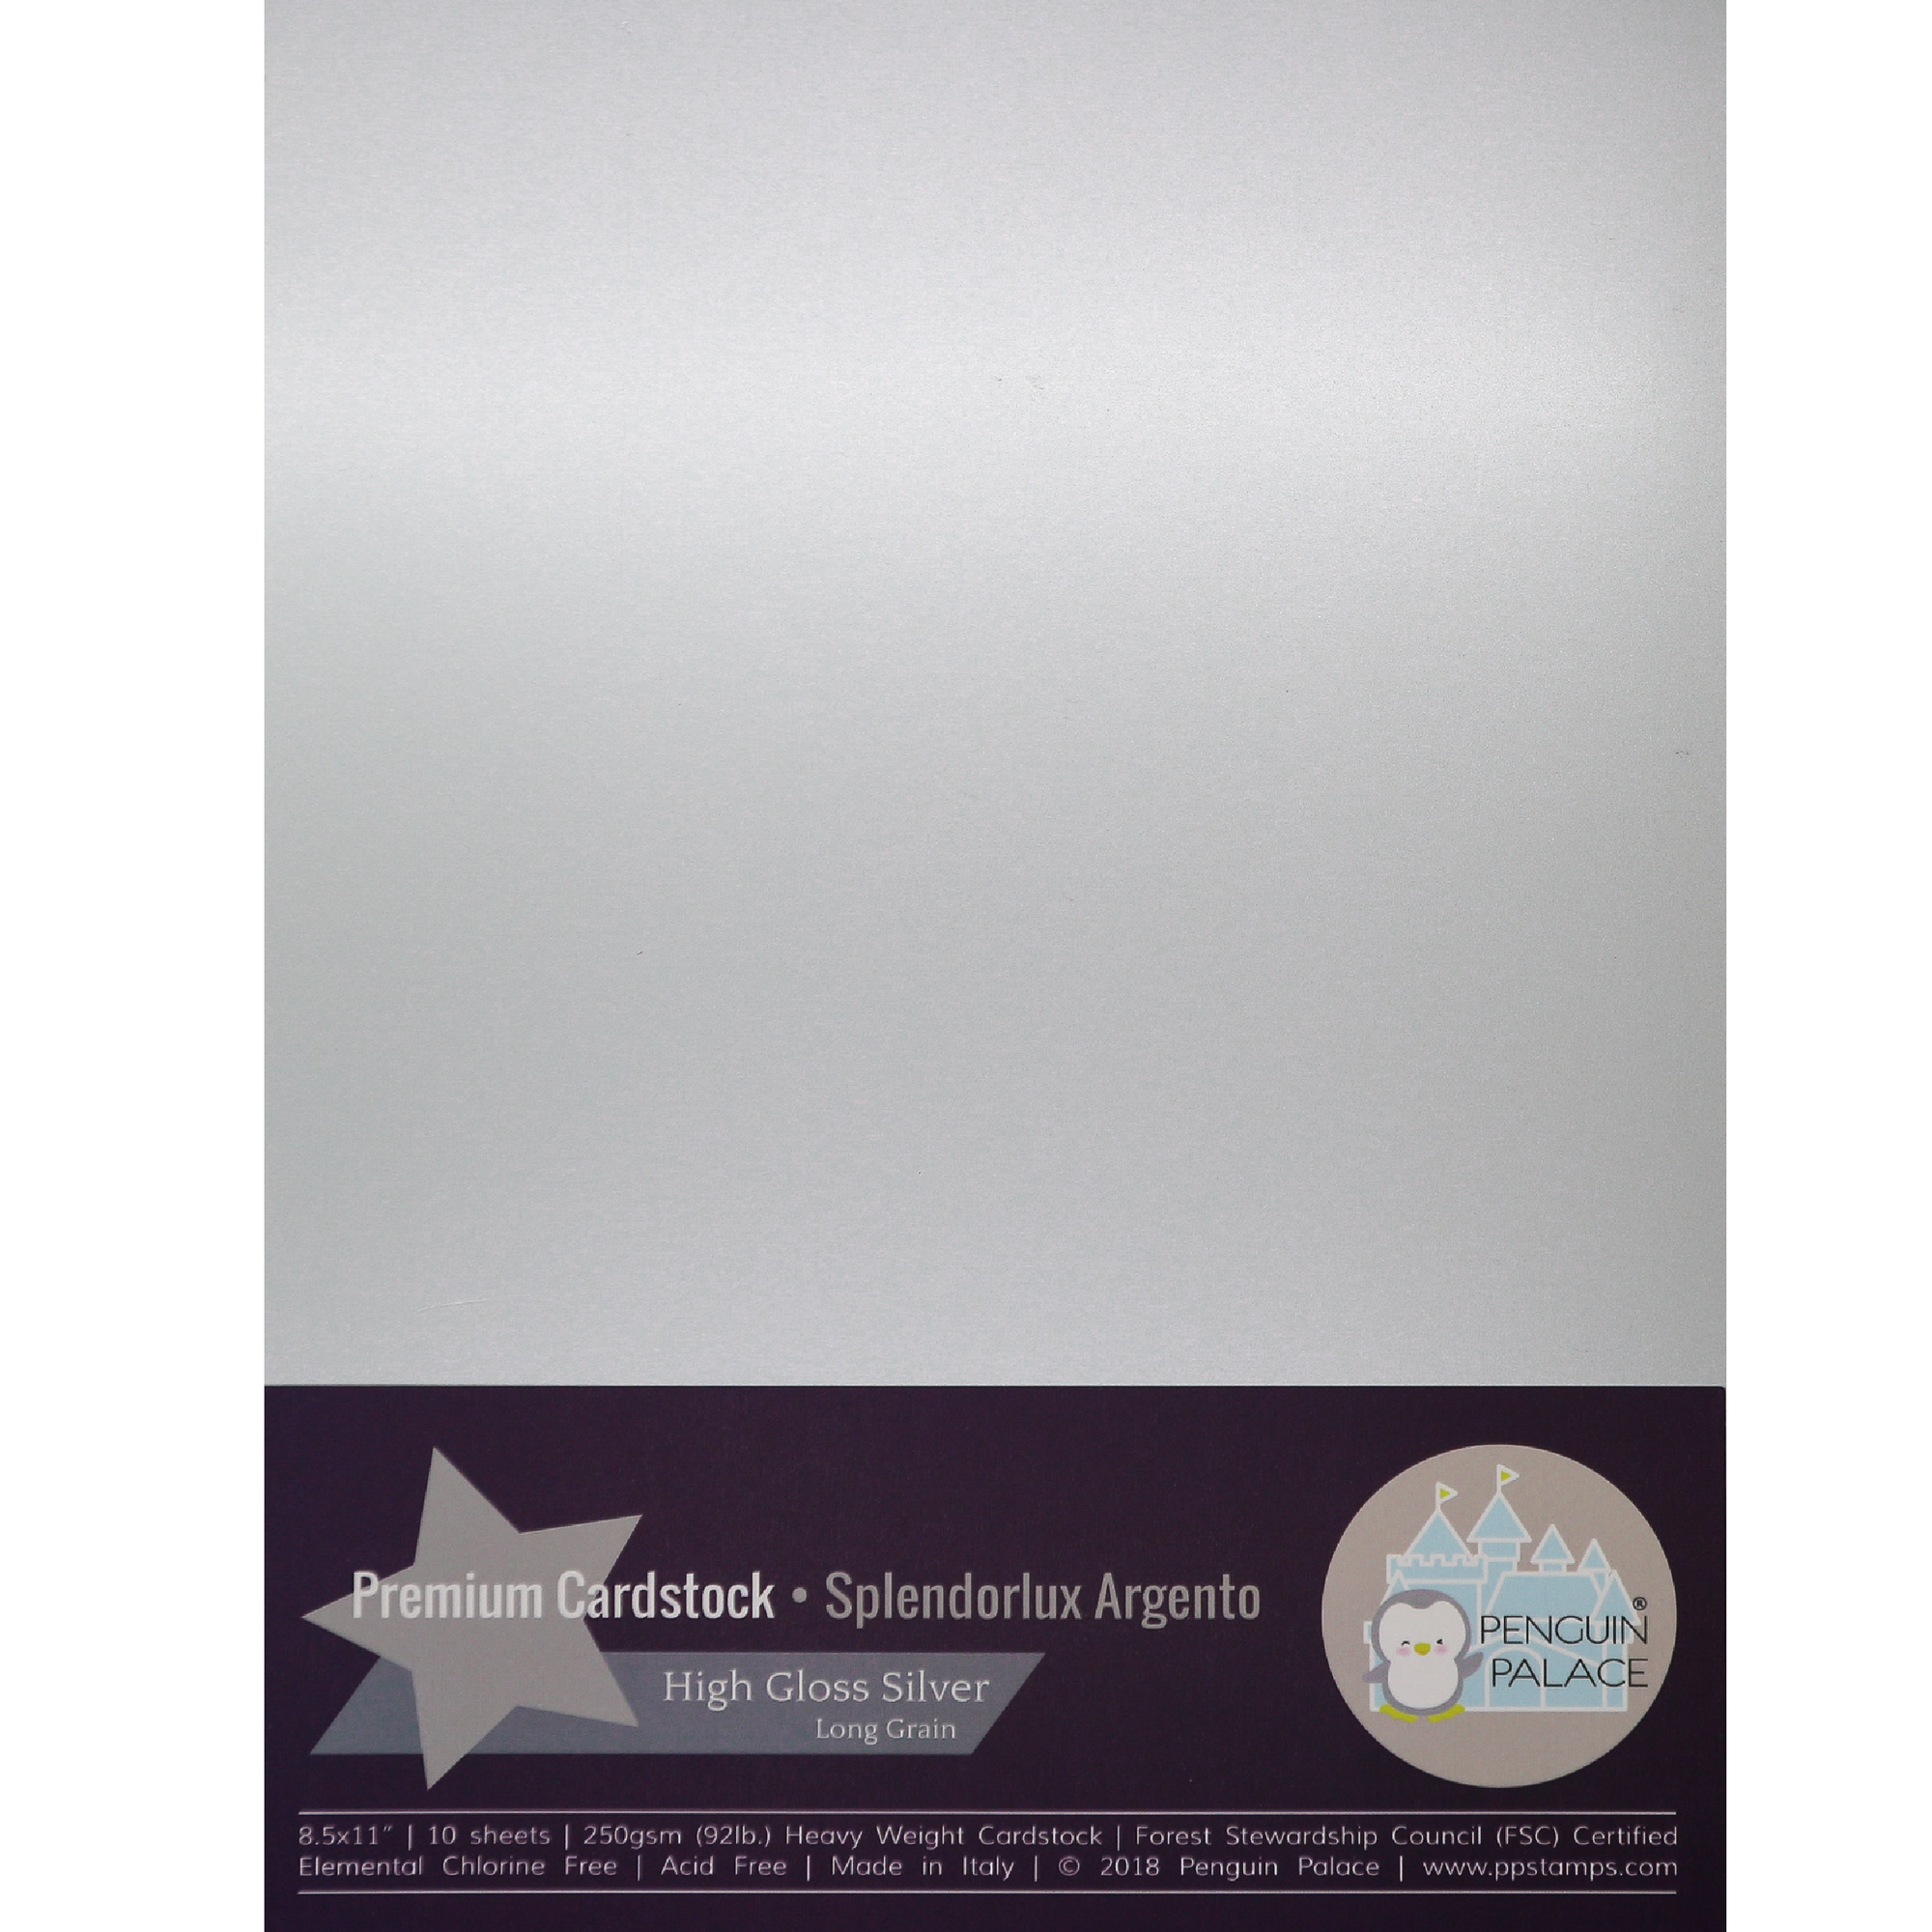 Splendorlux Argento - Heavy Weight Premium Cardstock